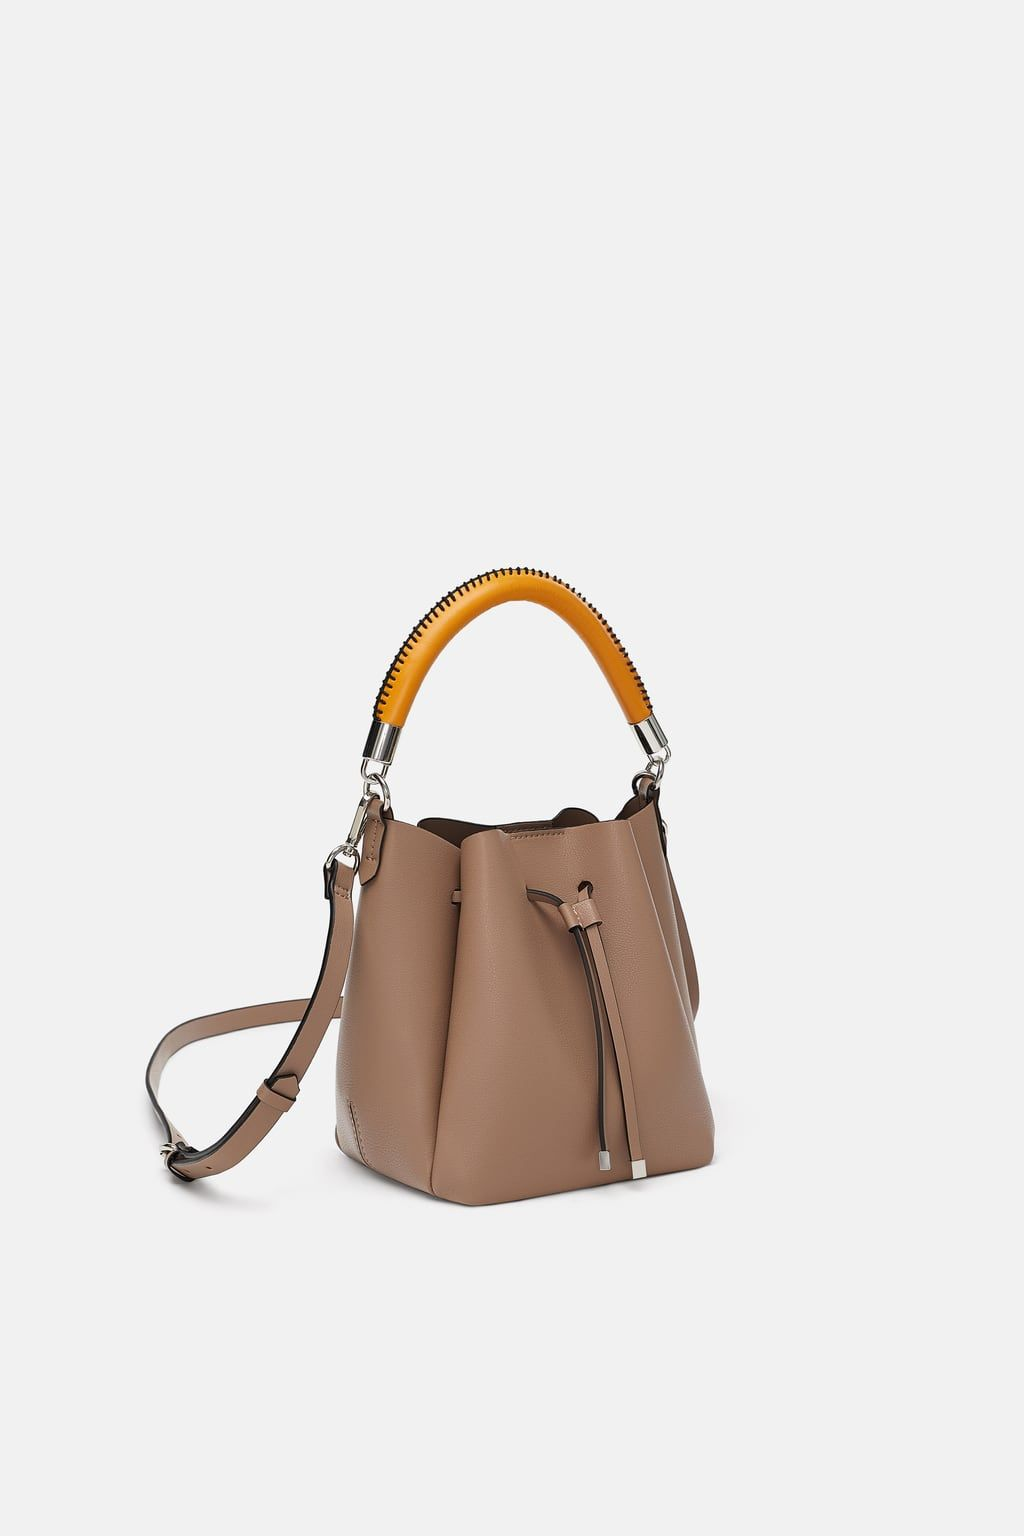 b67705c86e Image 1 of MINI BUCKET BAG WITH TOPSTITCHED HANDLE from Zara ...